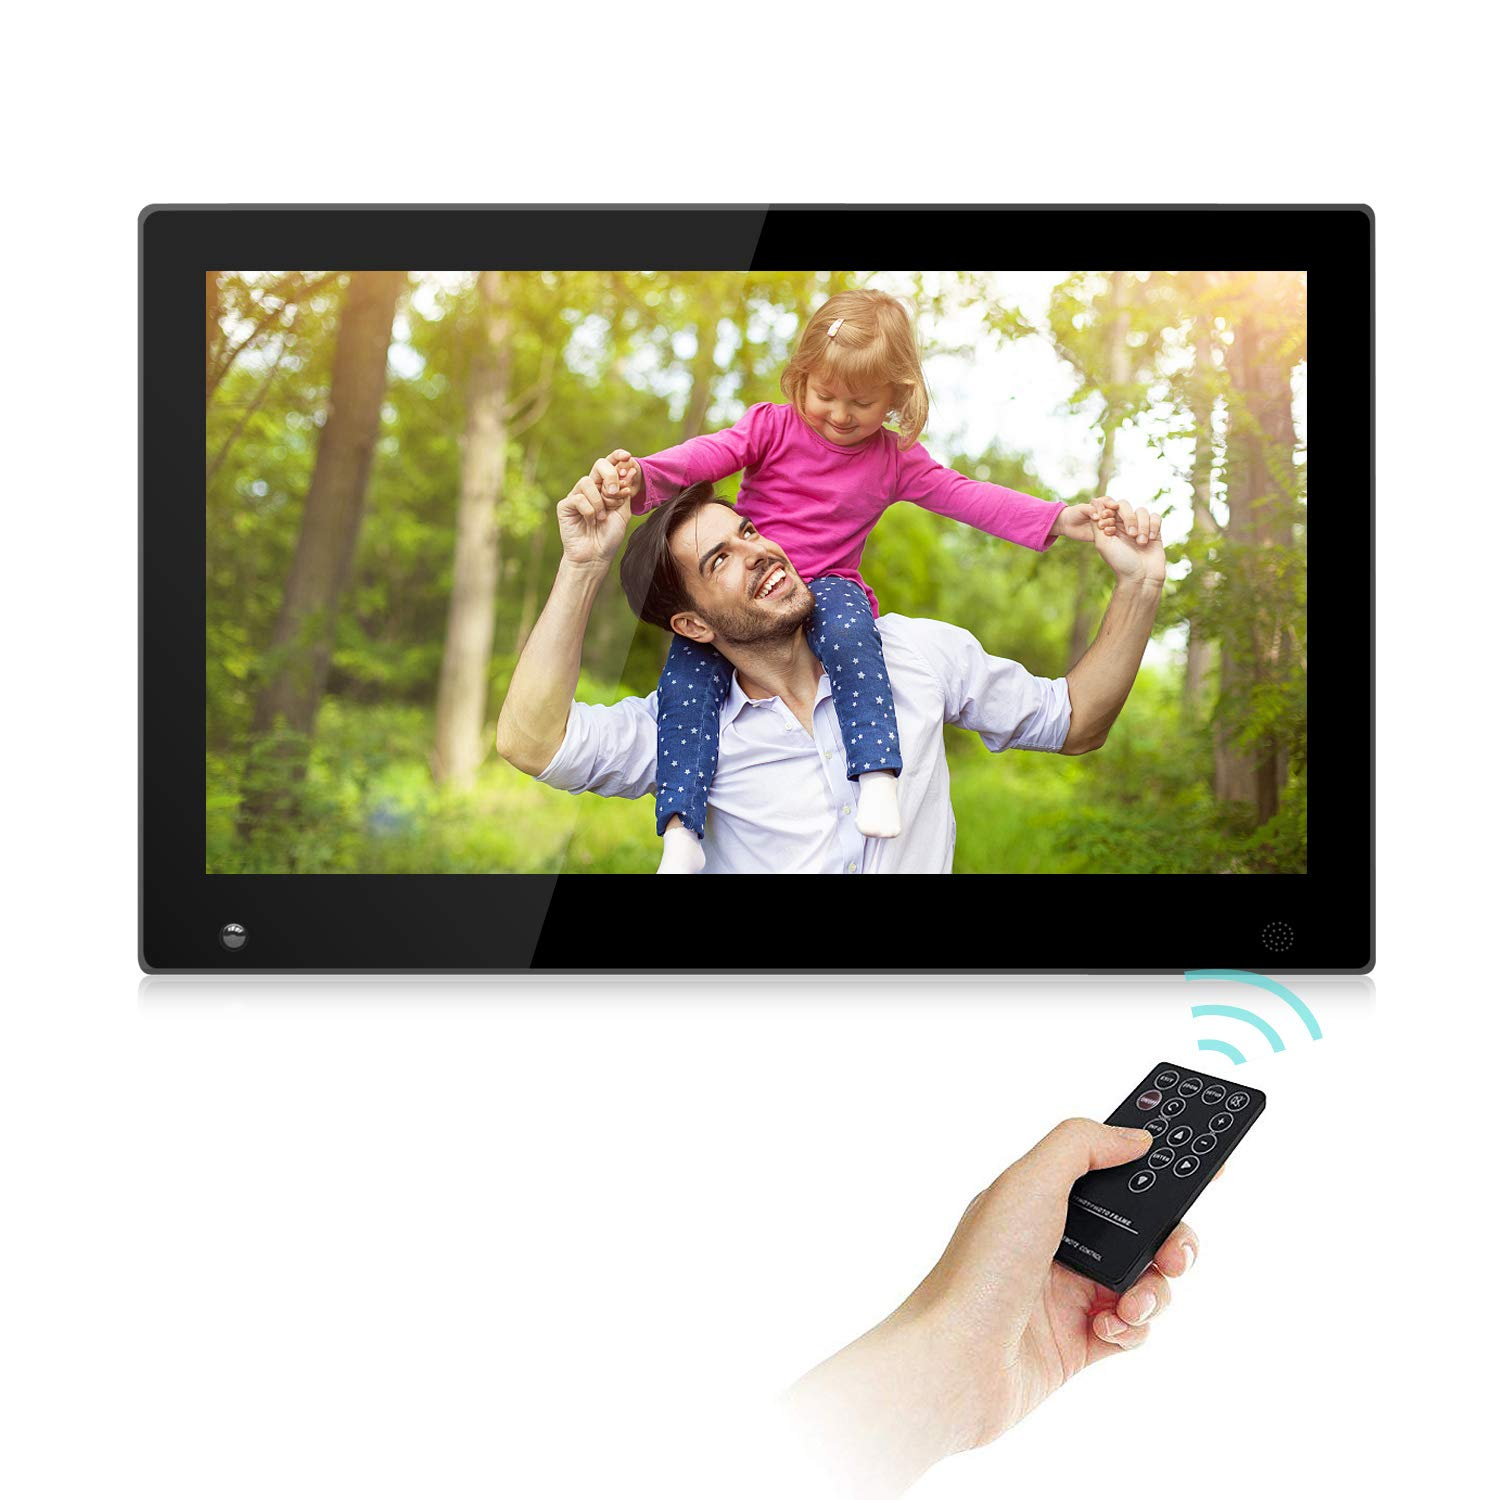 15.6 Inch Large Digital Picture Frame with Hu Motion Sensor LCD Advertising Player with 1080P LCD AV HDMI Input VESA Full IPS Remote by SSA (Image #1)